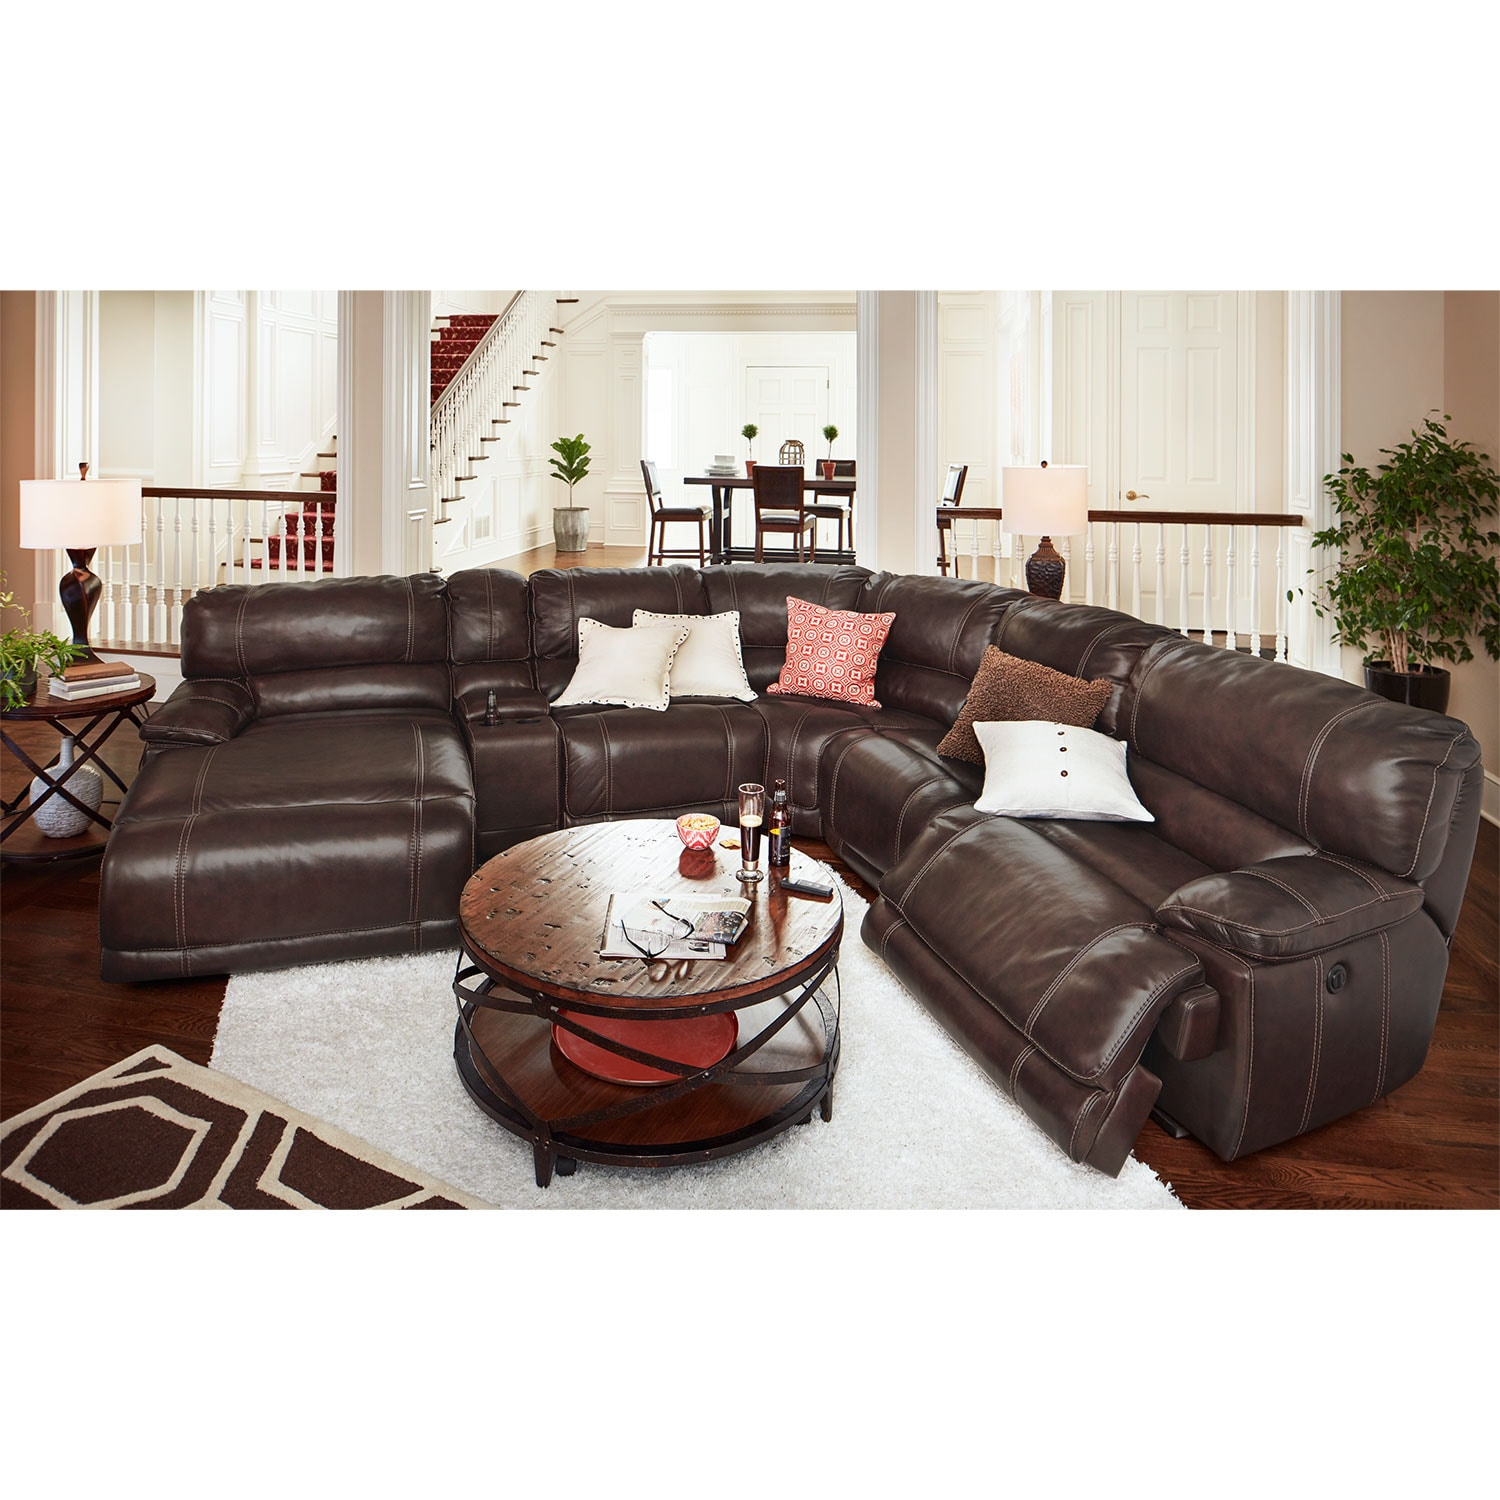 patina patola chaise ashley sectional item right piece products park with furniture number